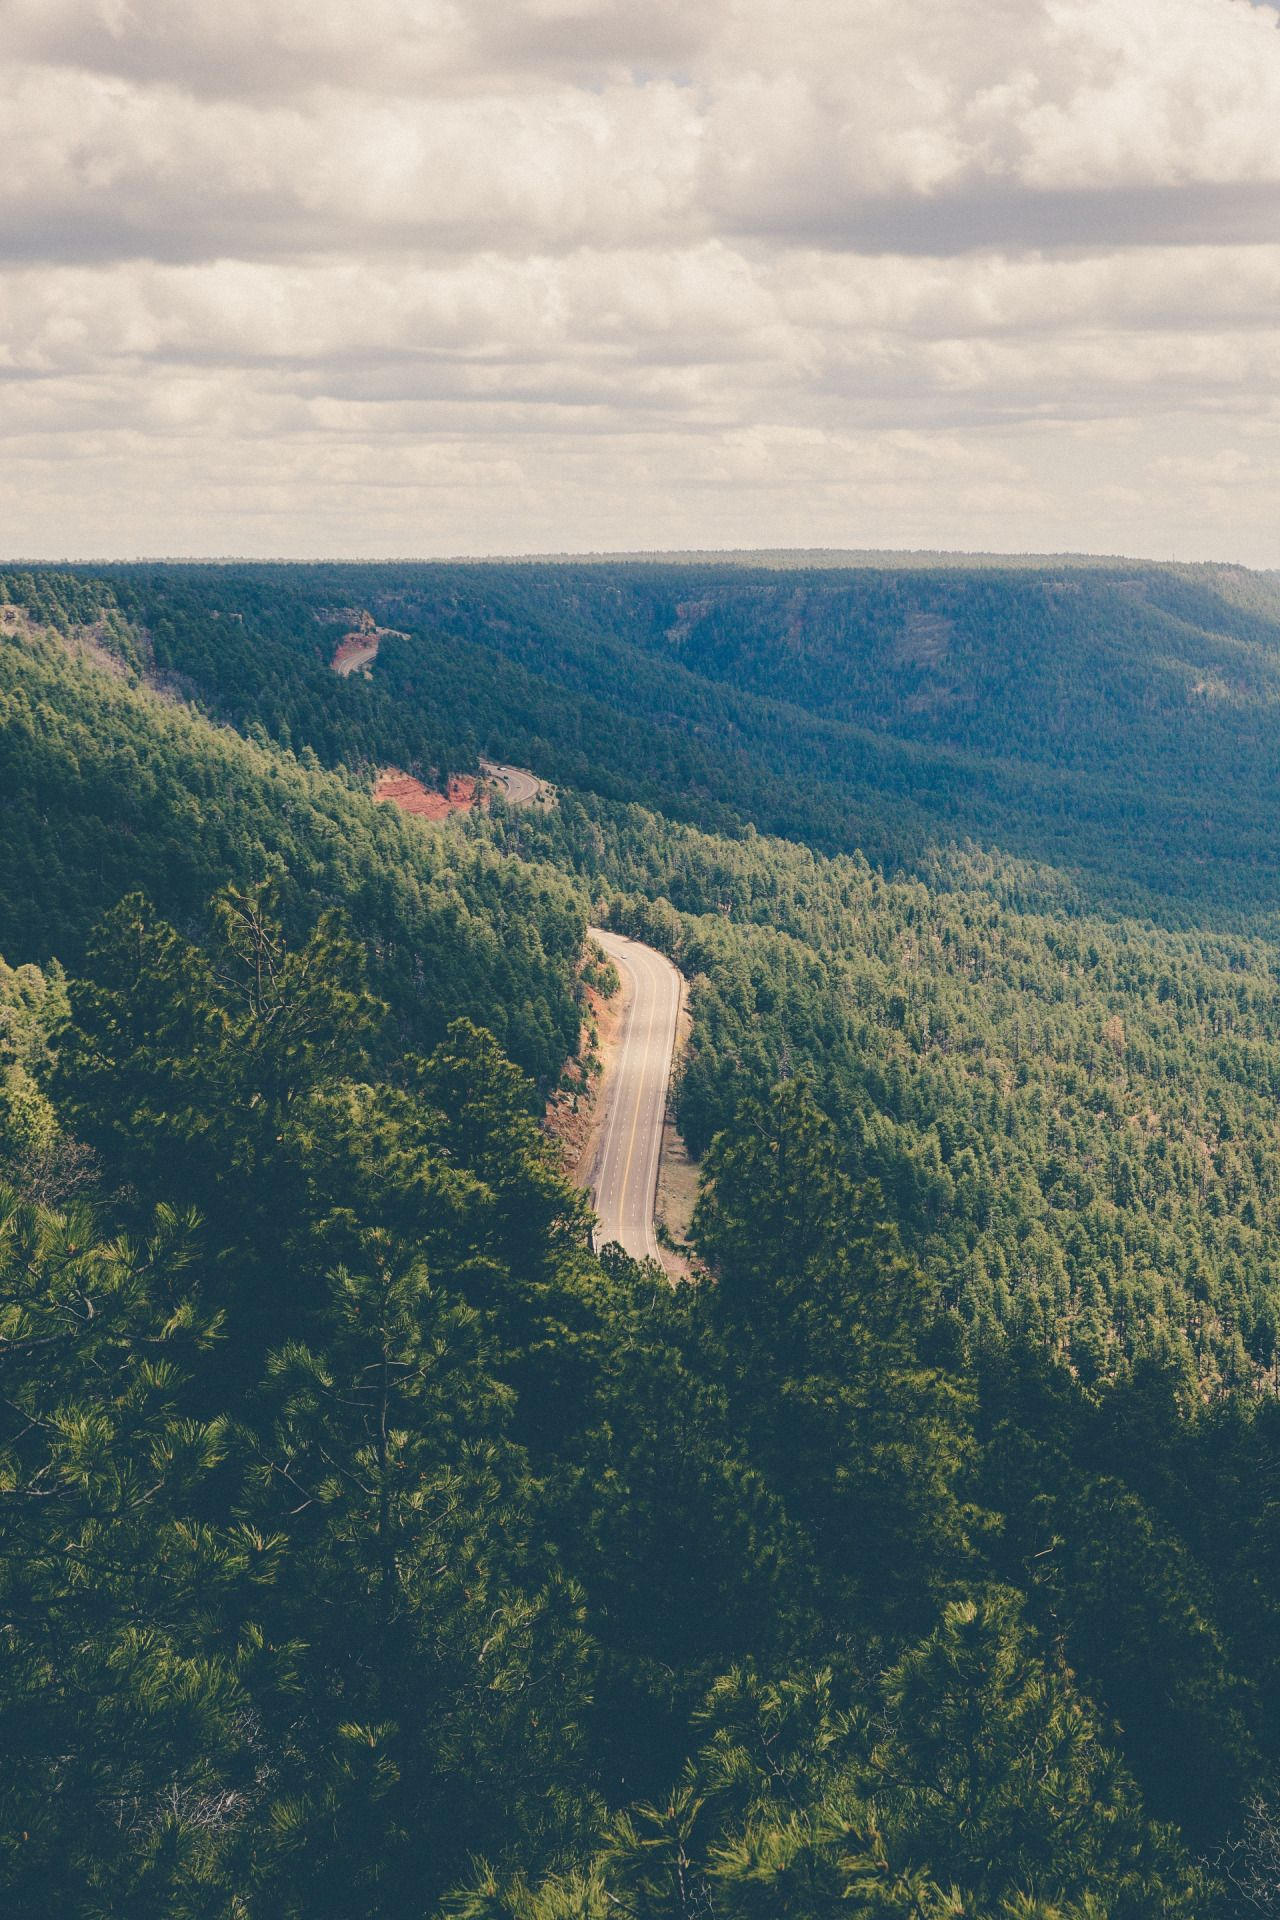 Road through nature | by Jakob Owens This photo as wallpaper on your smartphone? Get the app now!